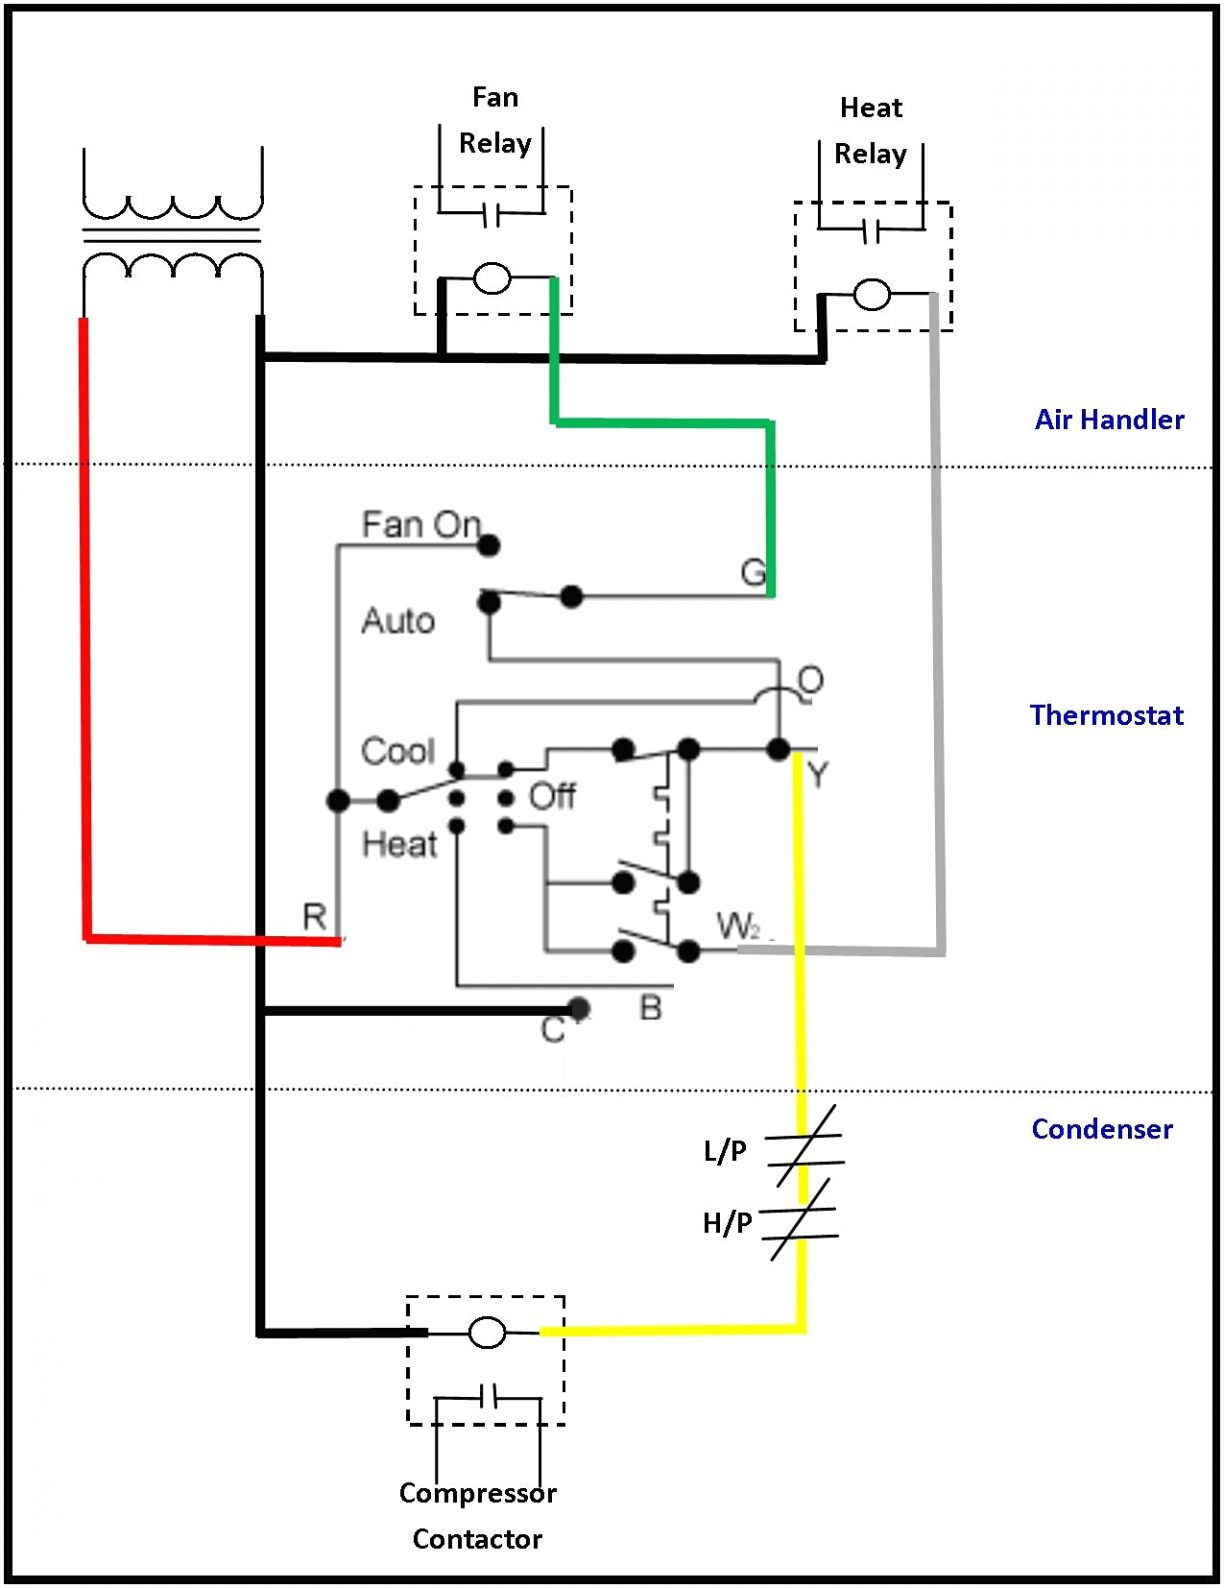 Diagram Central Air Conditioner Thermostat Wiring Diagram Full Version Hd Quality Wiring Diagram Diagrammasas Sanitacalabria It